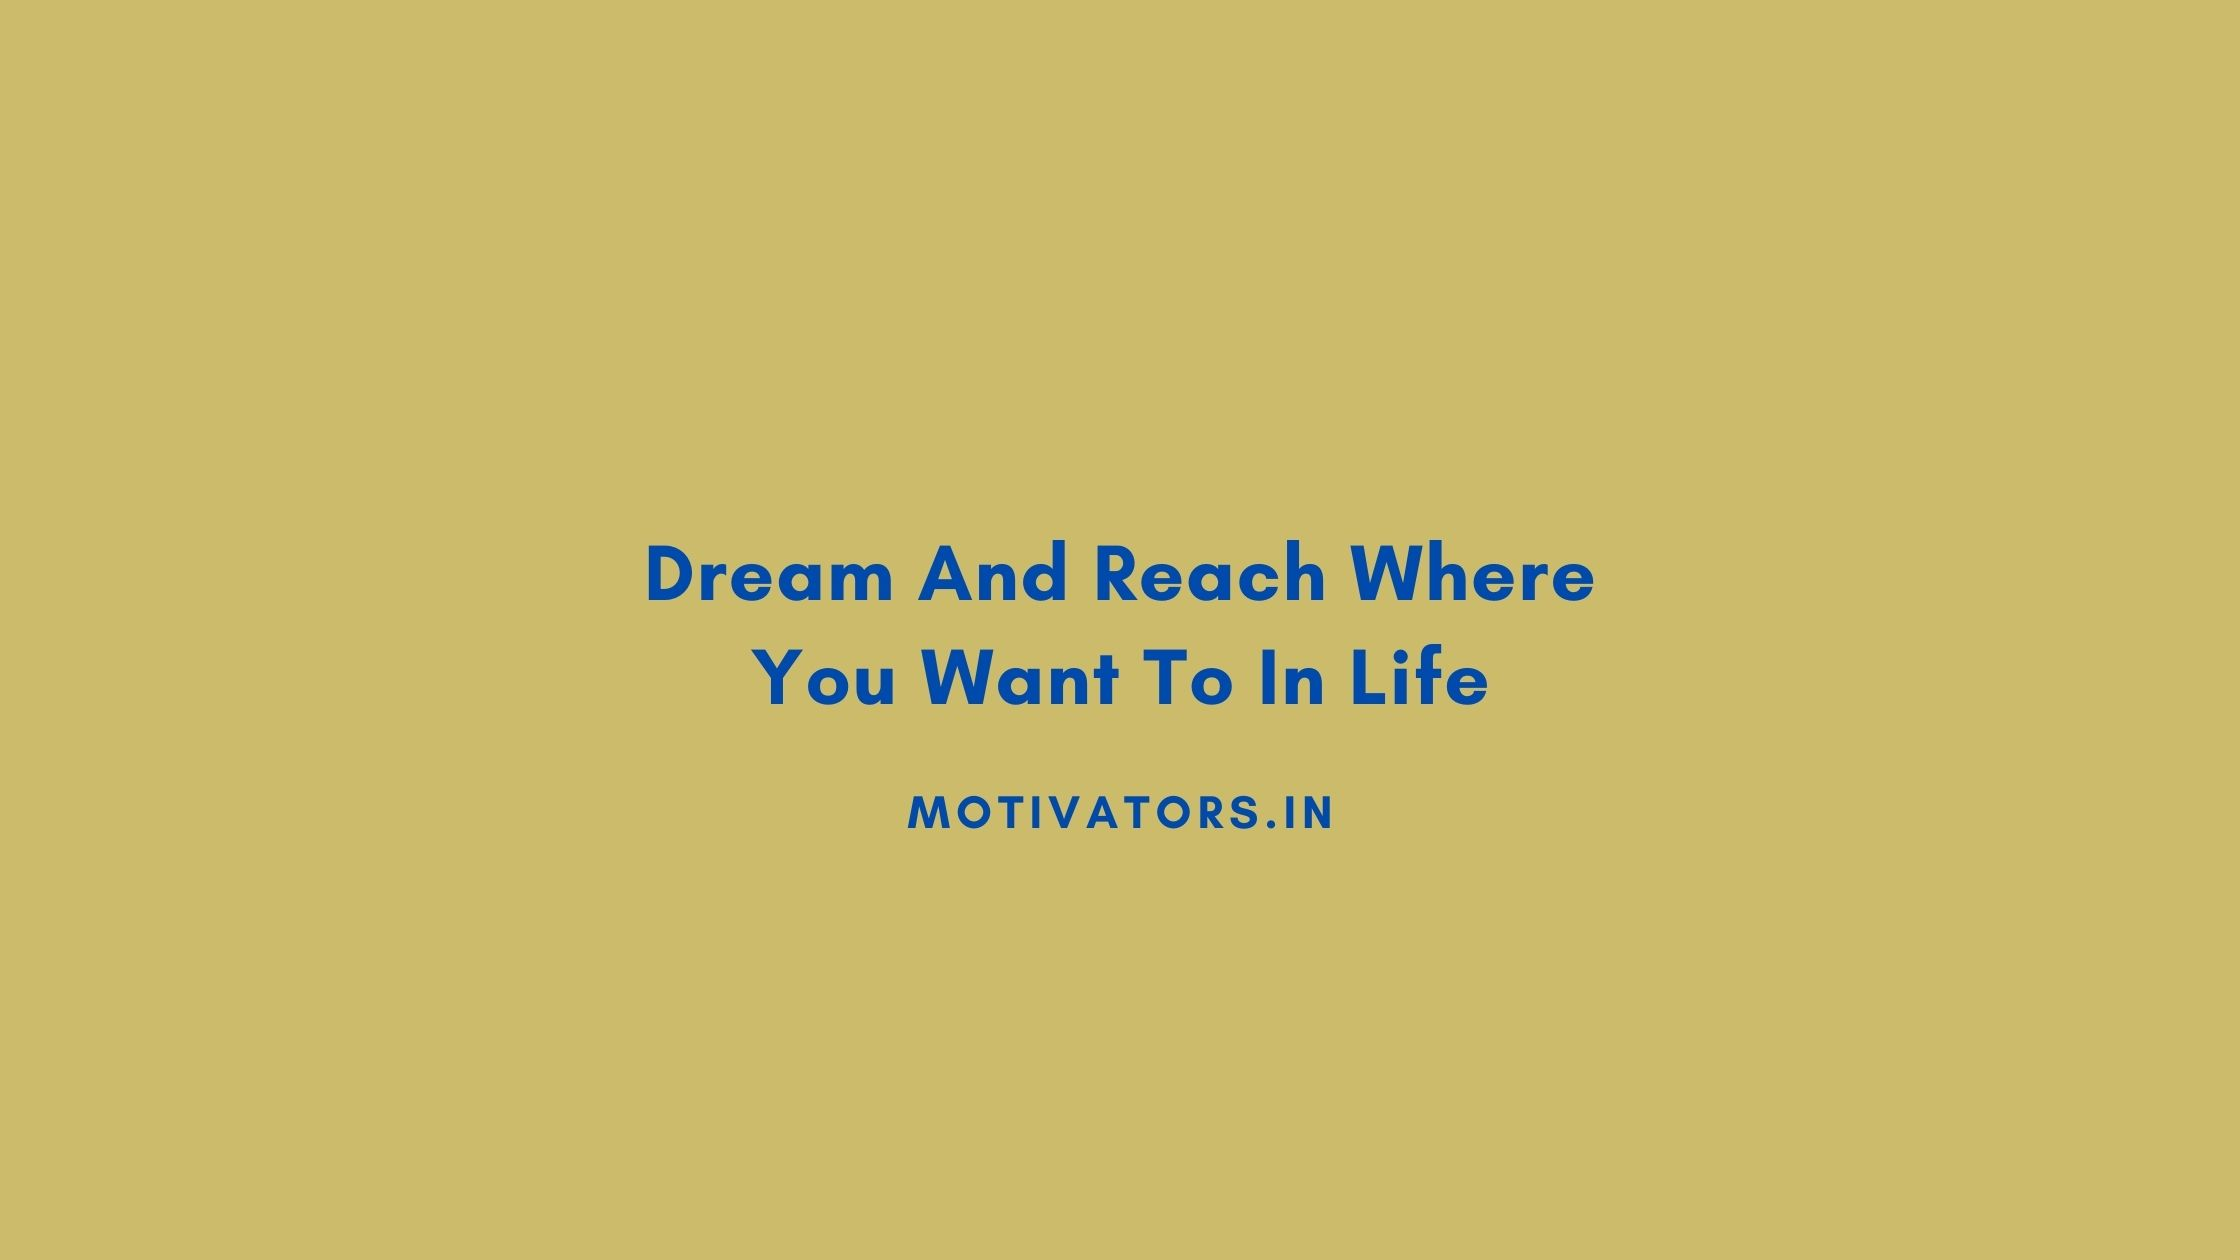 Dream And Reach Where You Want To In Life